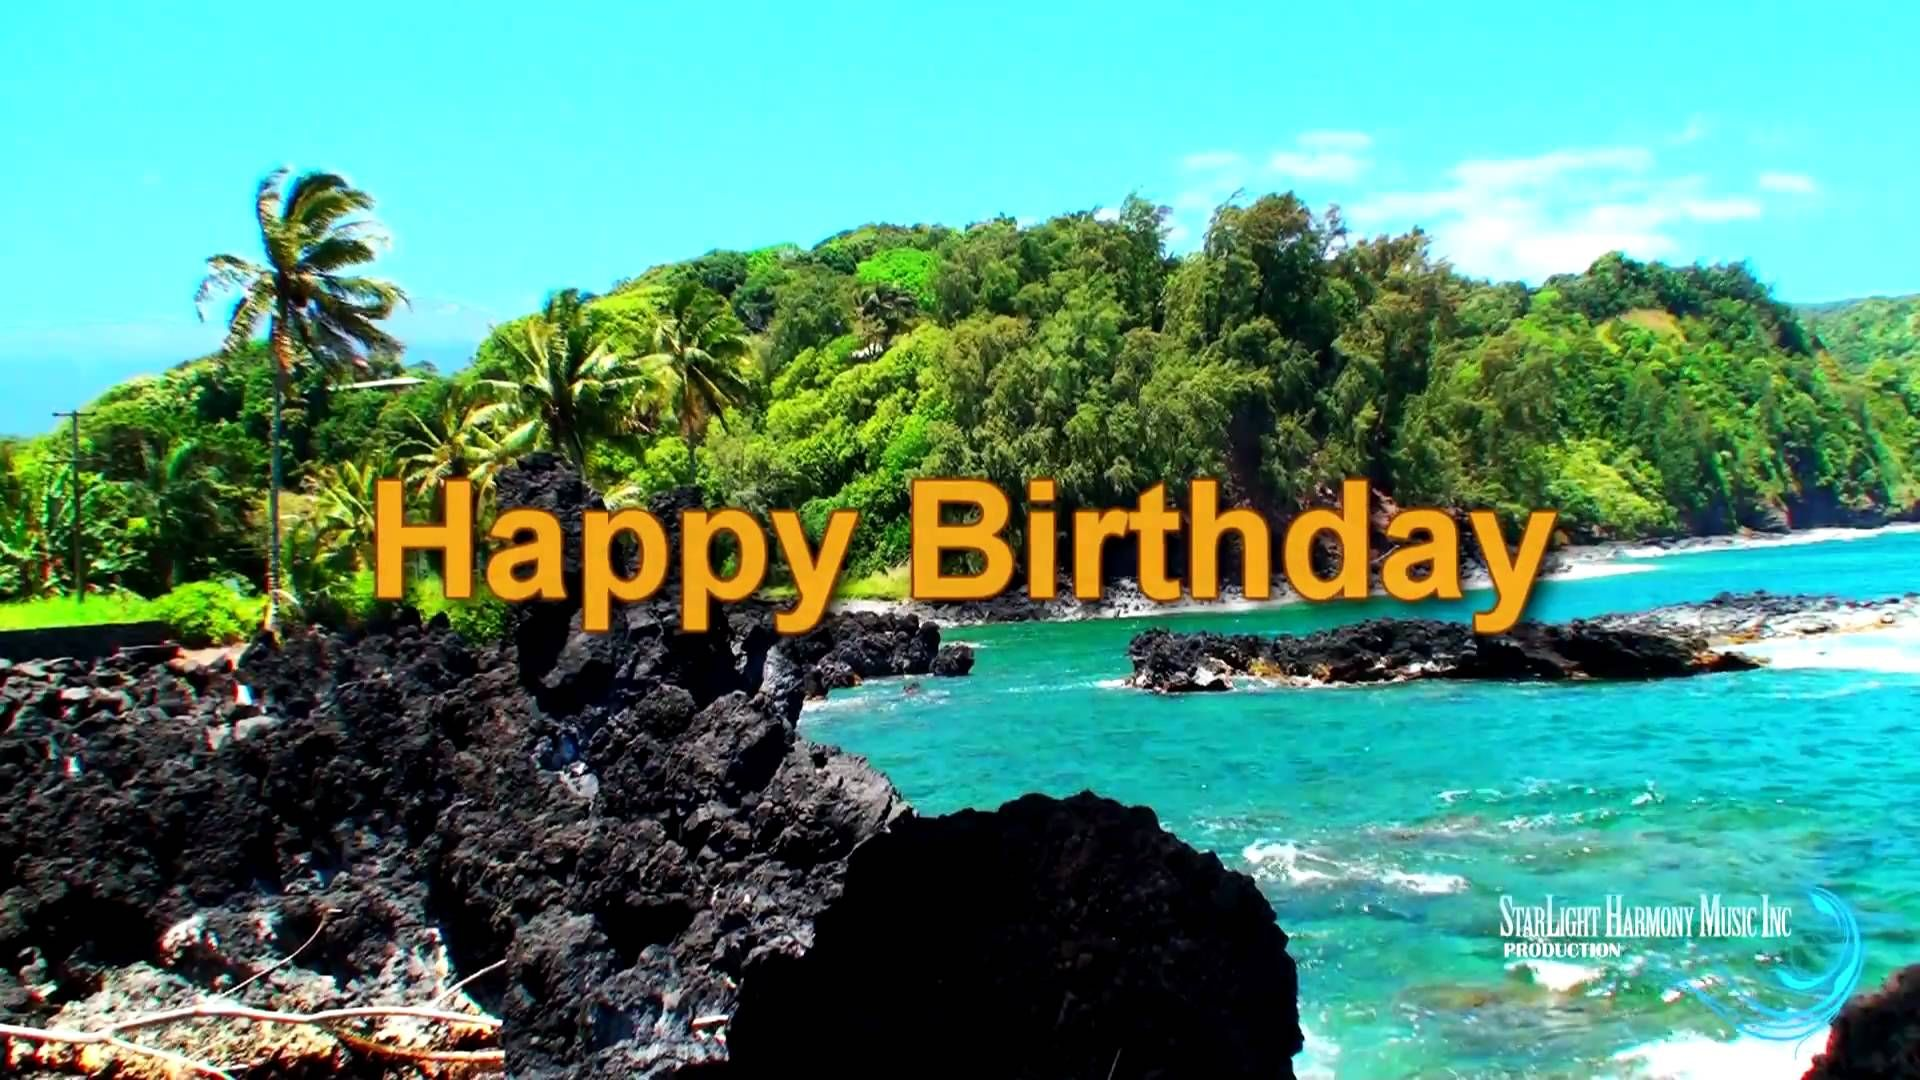 Happy Birthday Youtube Greetings Yt Greetings Free E Cards